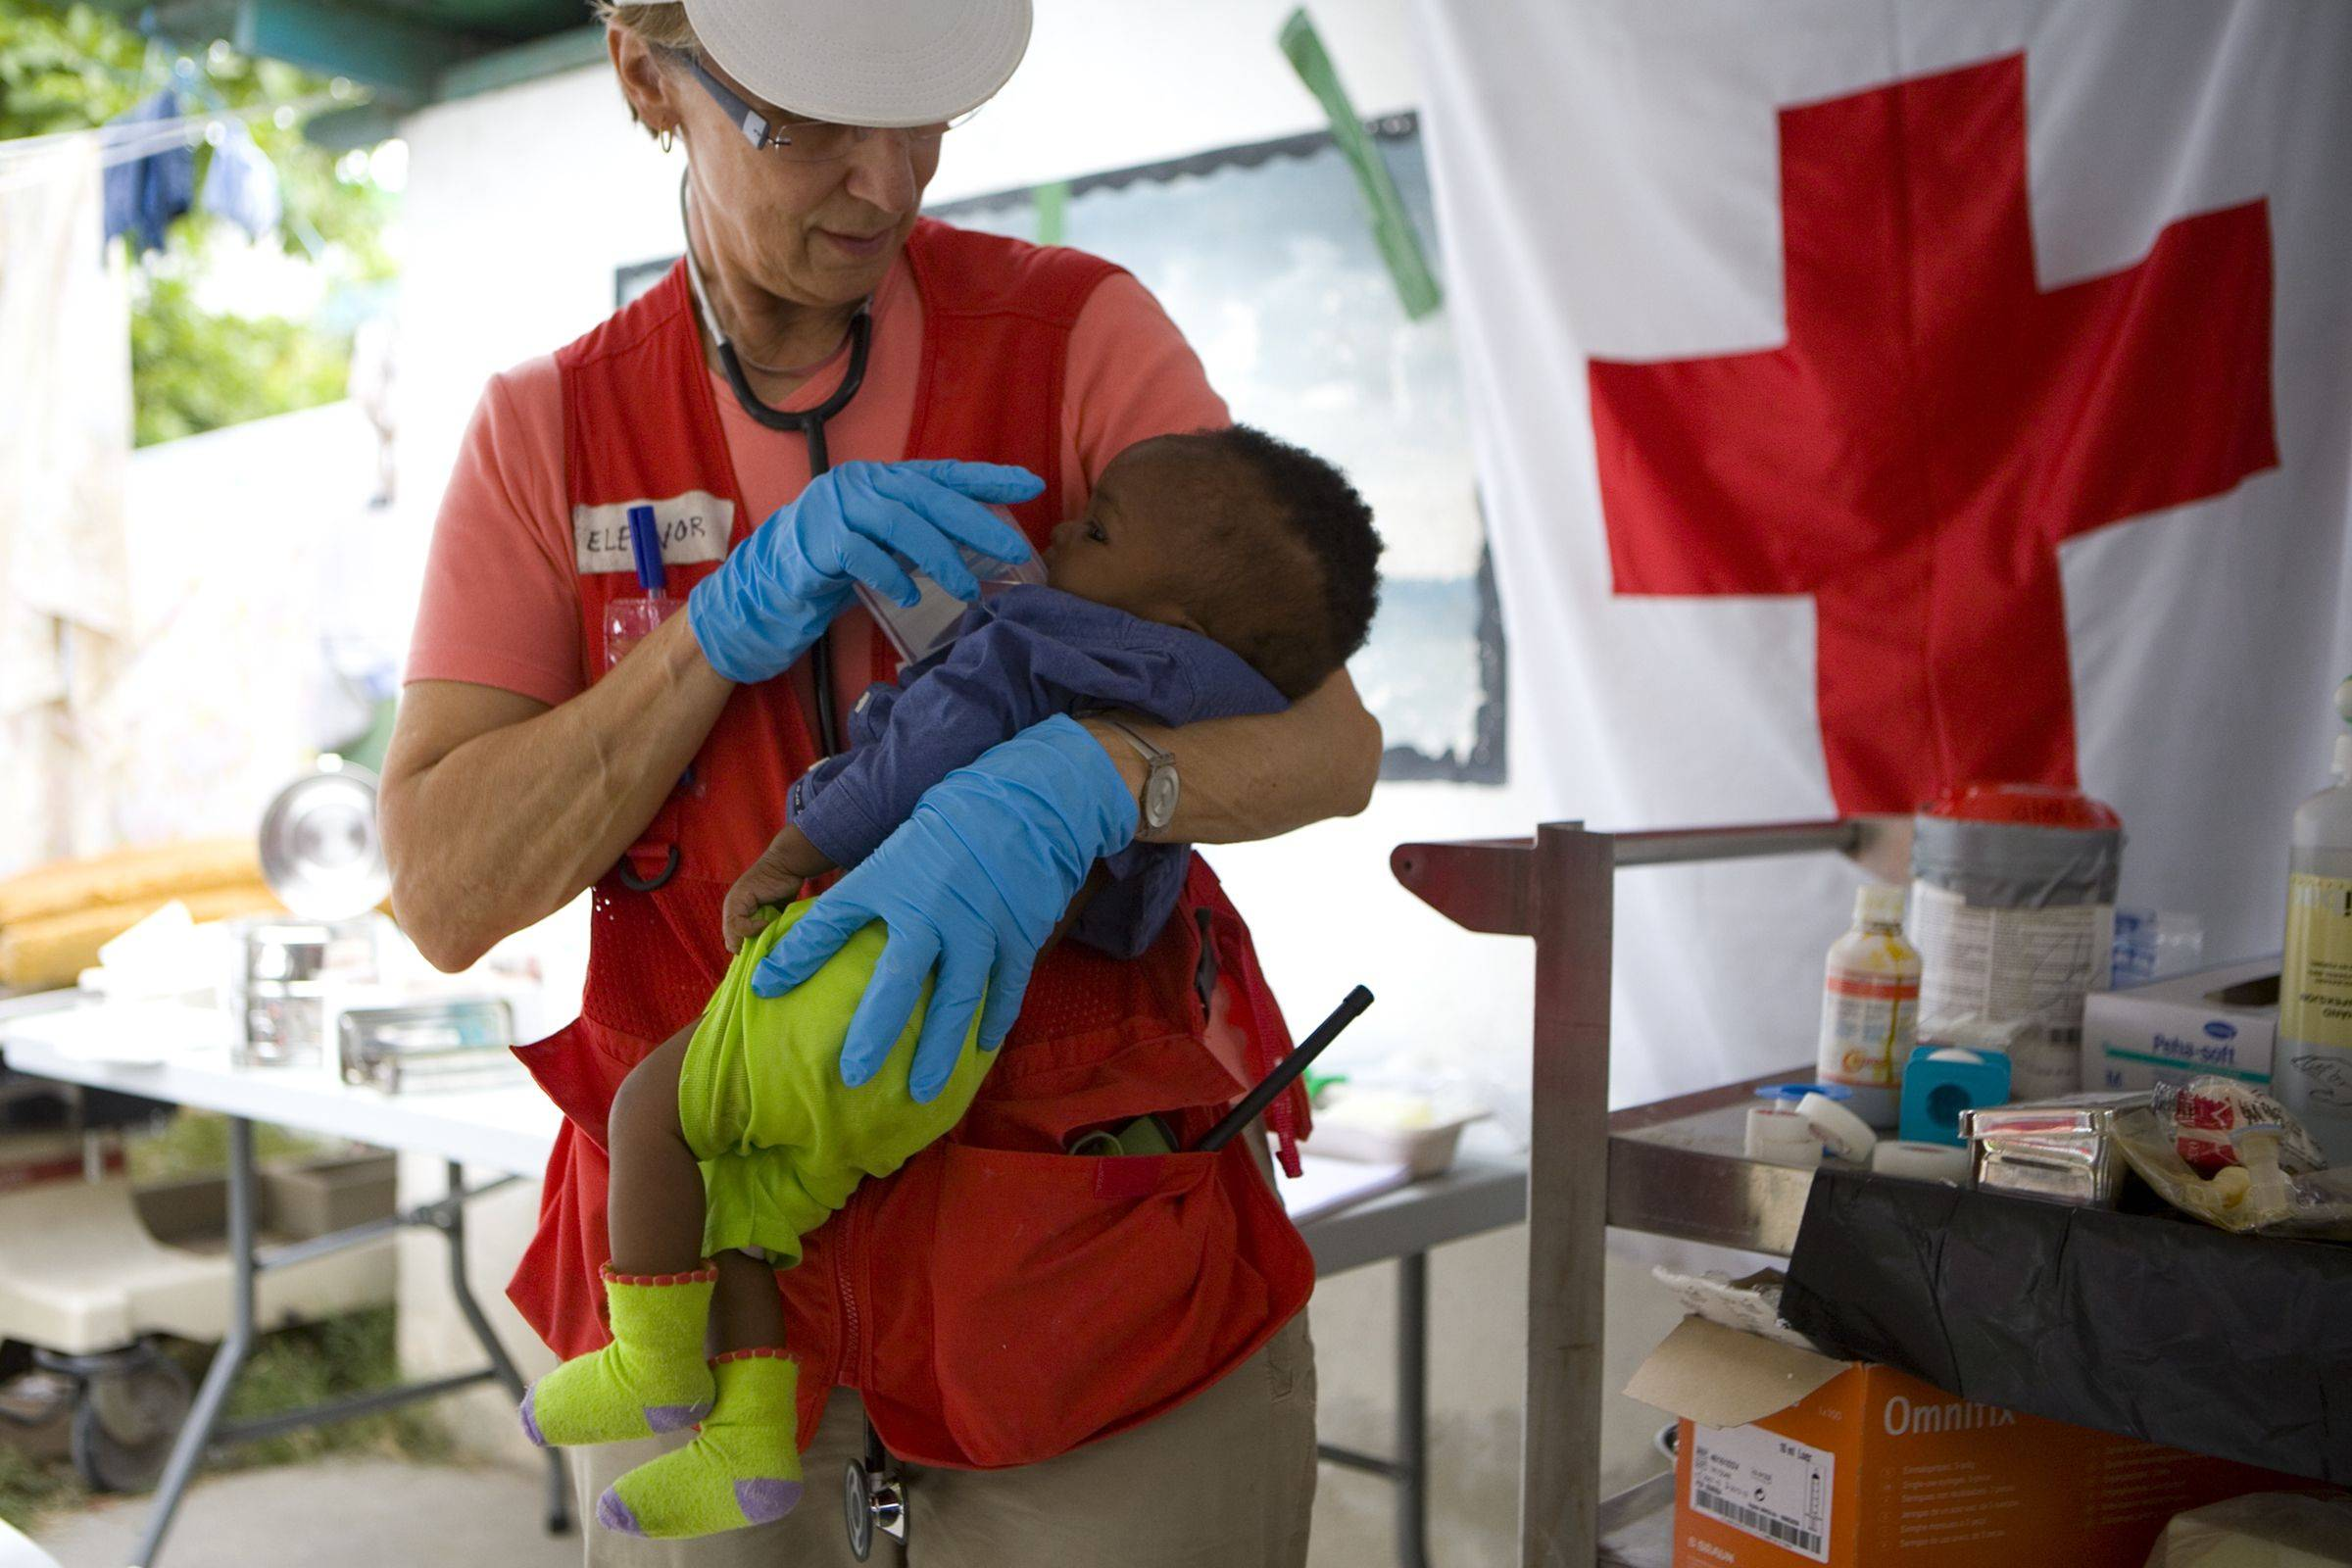 In this Jan. 19, 2010 photo provided by the American Red Cross, Eleanore Rose of the Canadian Red Cross holds six-month-old Sebastian Joseph at Hospital General in Haiti. Sebastian�s mother was killed in the Jan. 12 earthquake. For the American Red Cross, a surge of donations to help its relief efforts in Haiti provides a dramatic chance to prove it learned from its flawed responses to Hurricane Katrina and the 9/11 terror attacks.